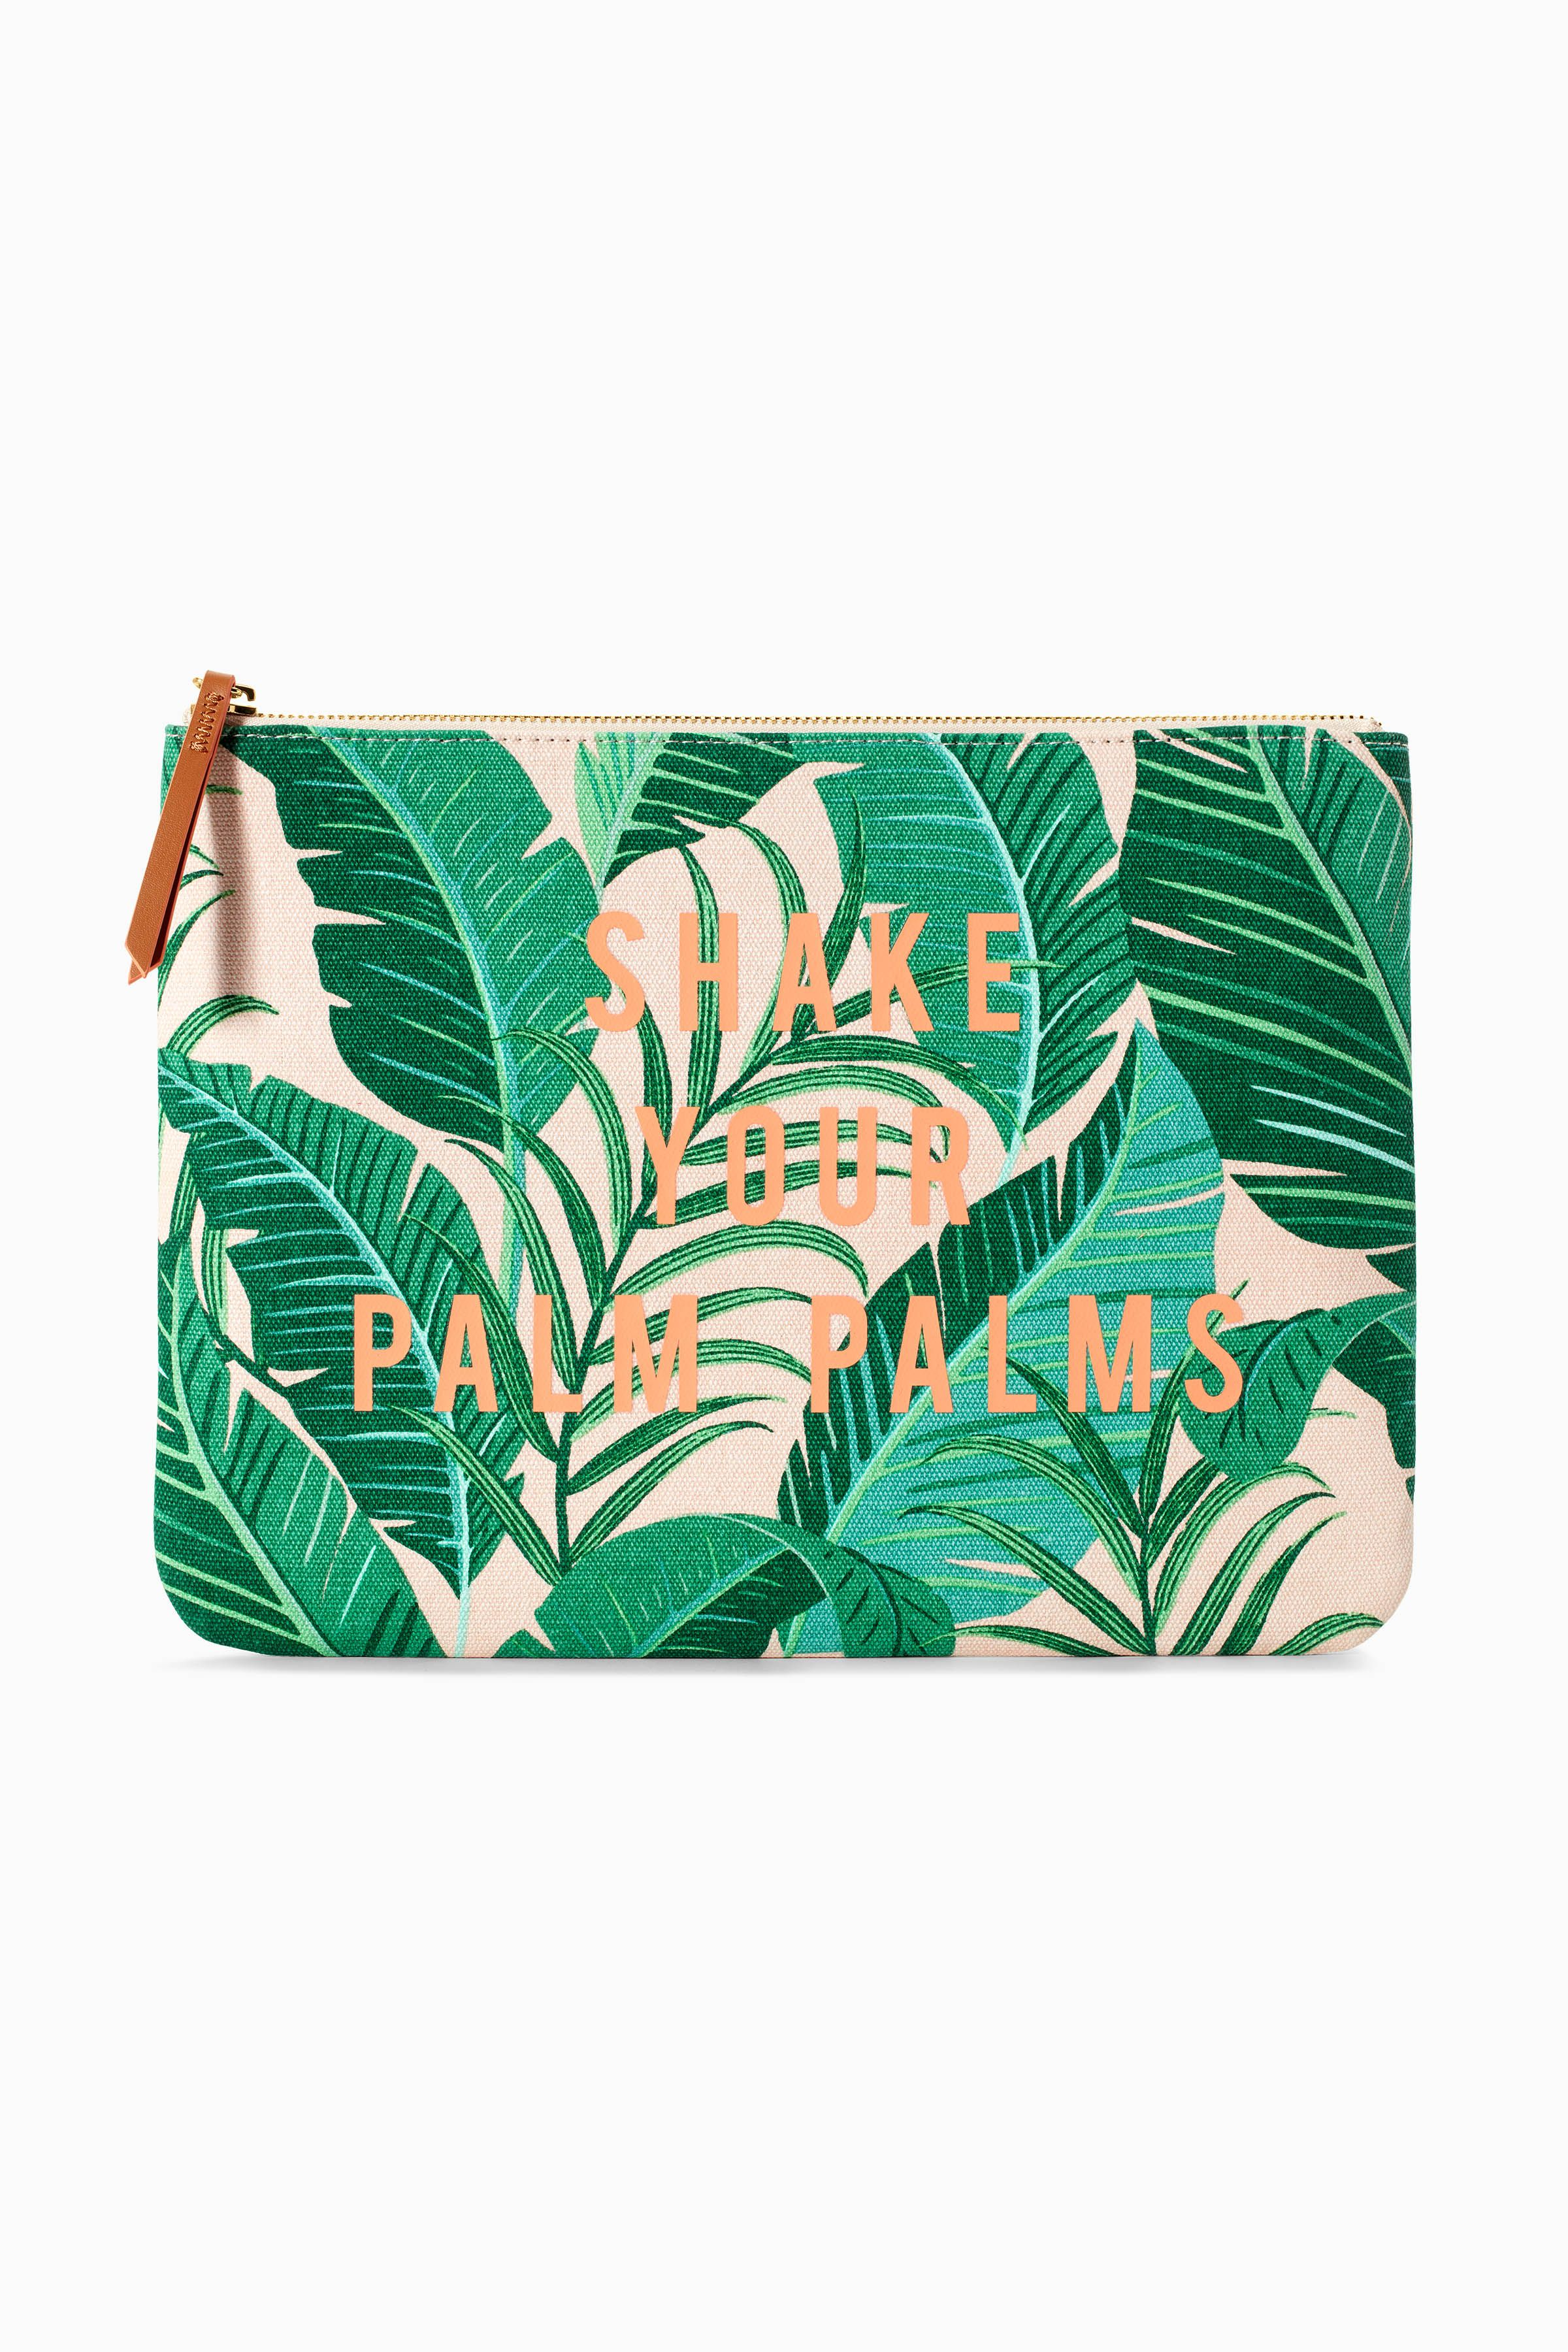 All In Pouch - Shake Your Palm Palms | Stella & Dot Shop my online boutique